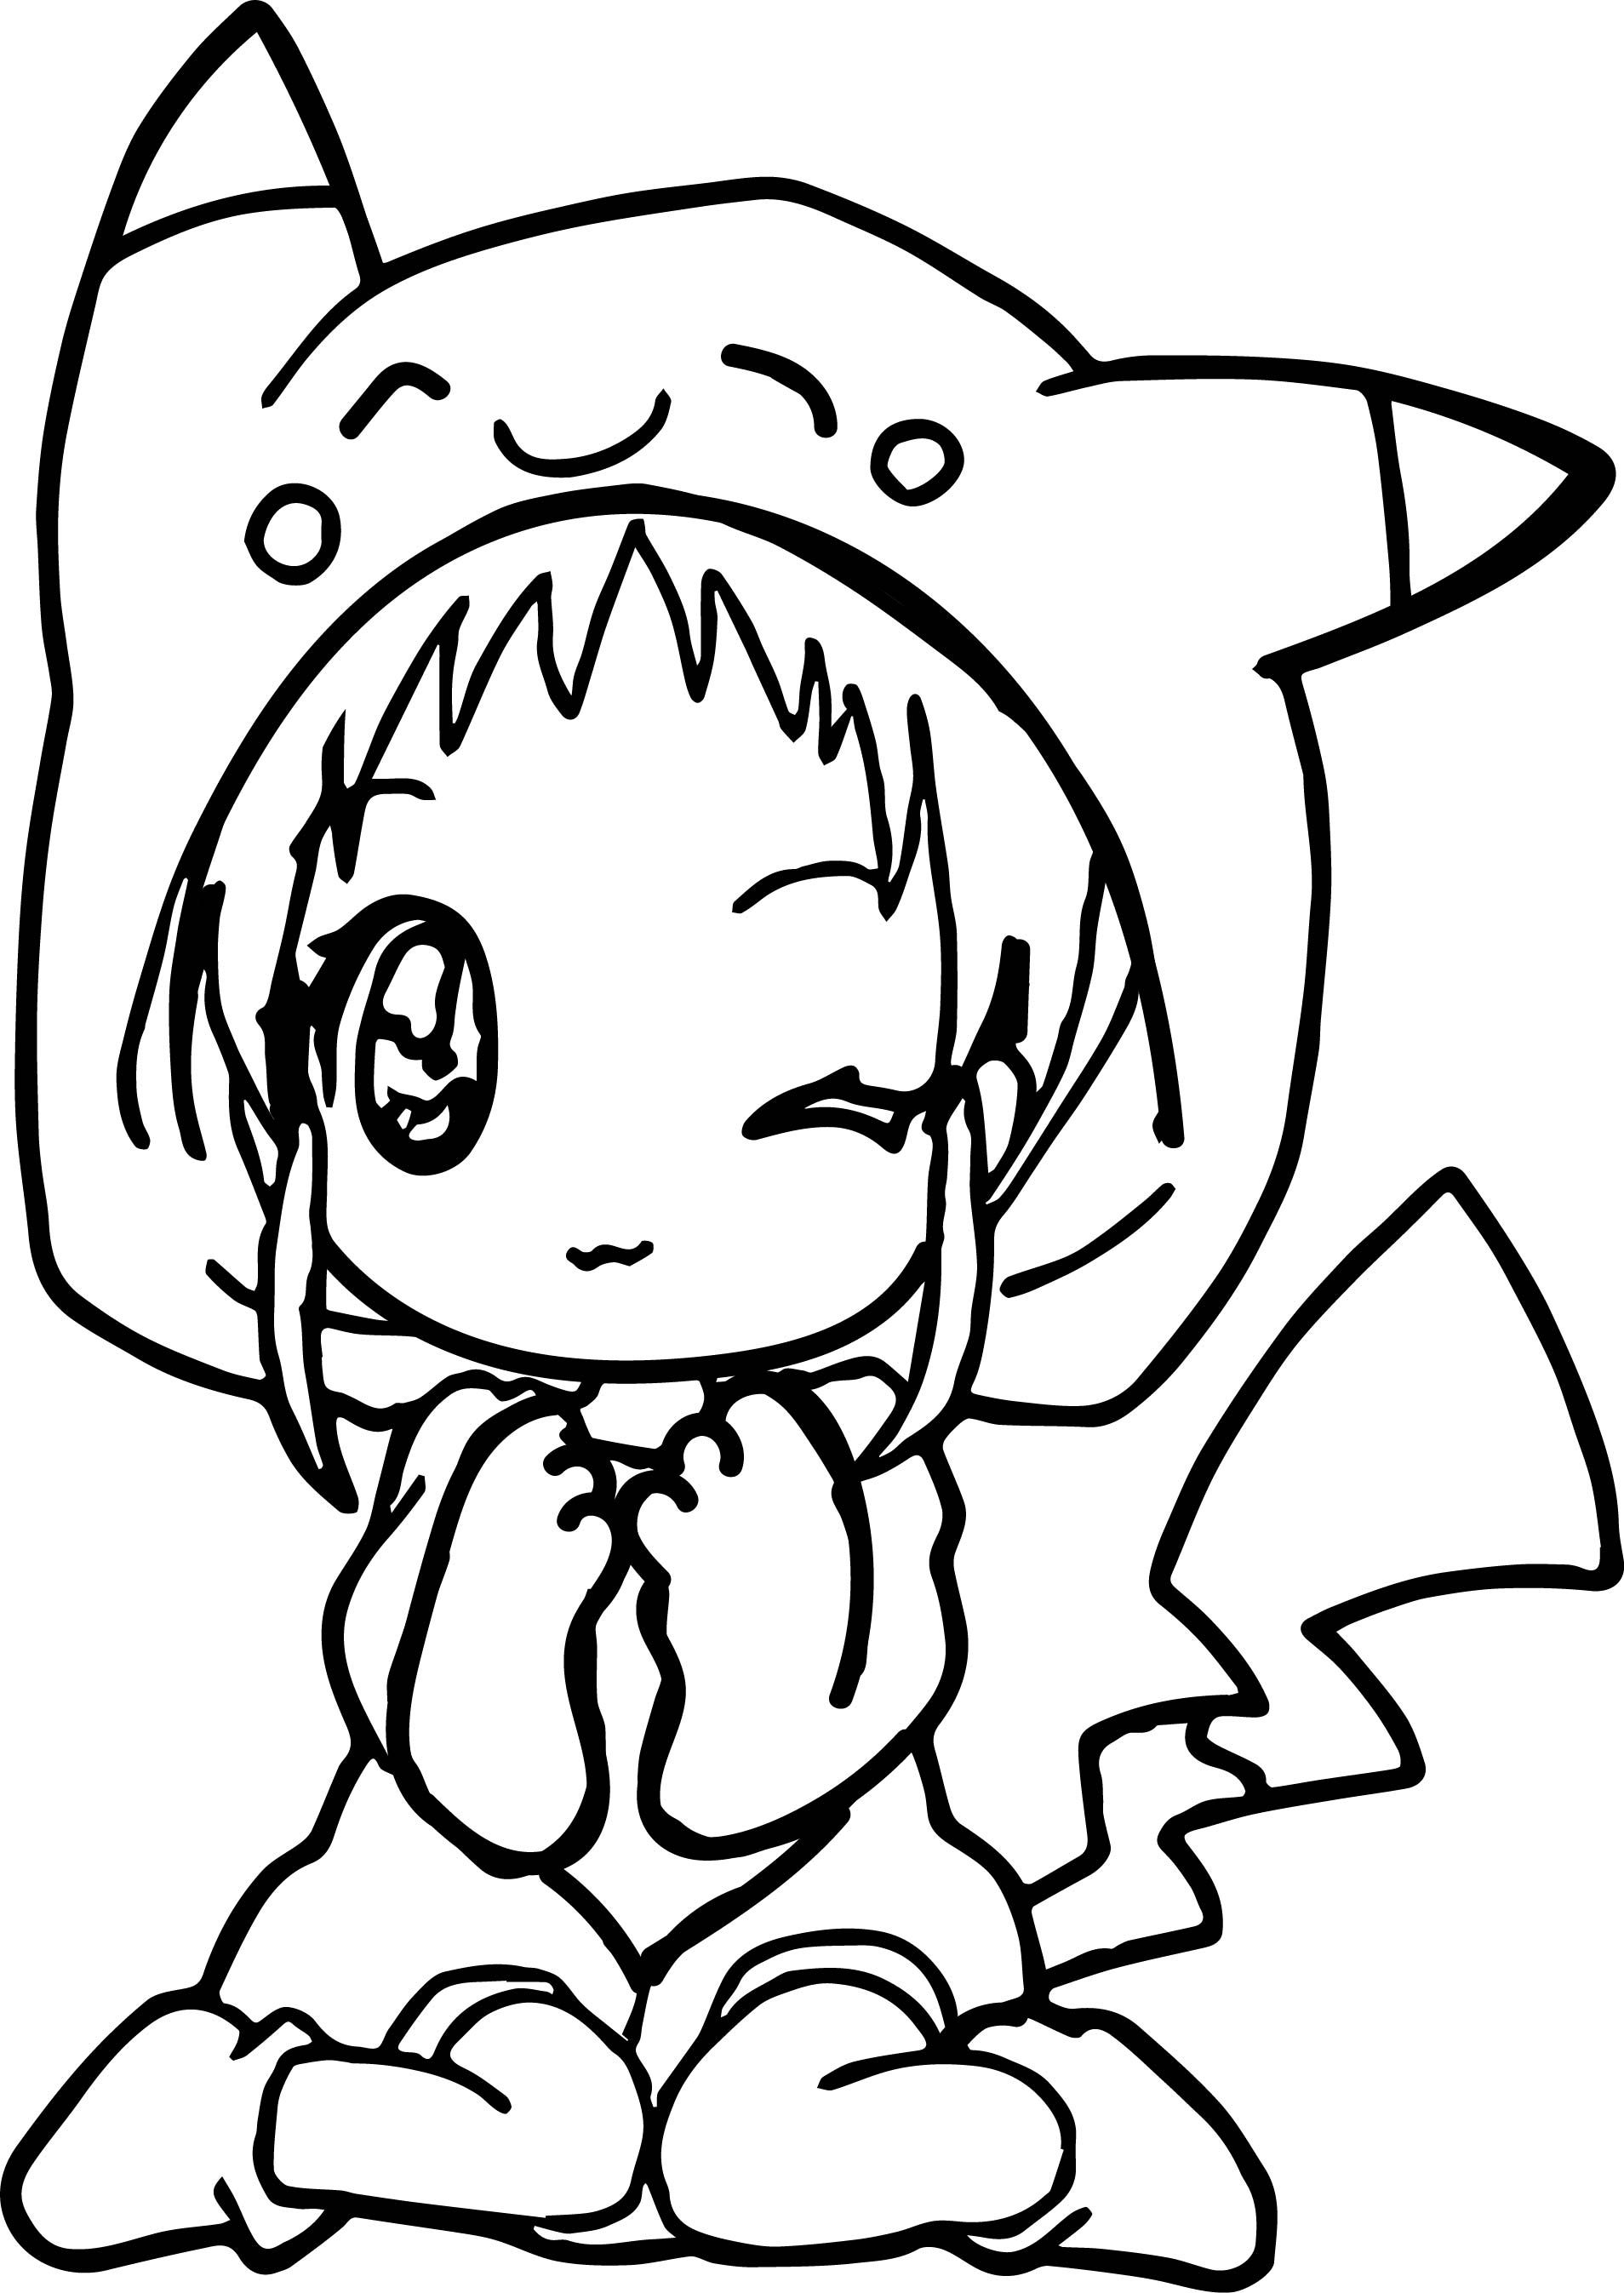 Anime Girl Pikachu Dress Coloring Page Wecoloringpage At Color Pages